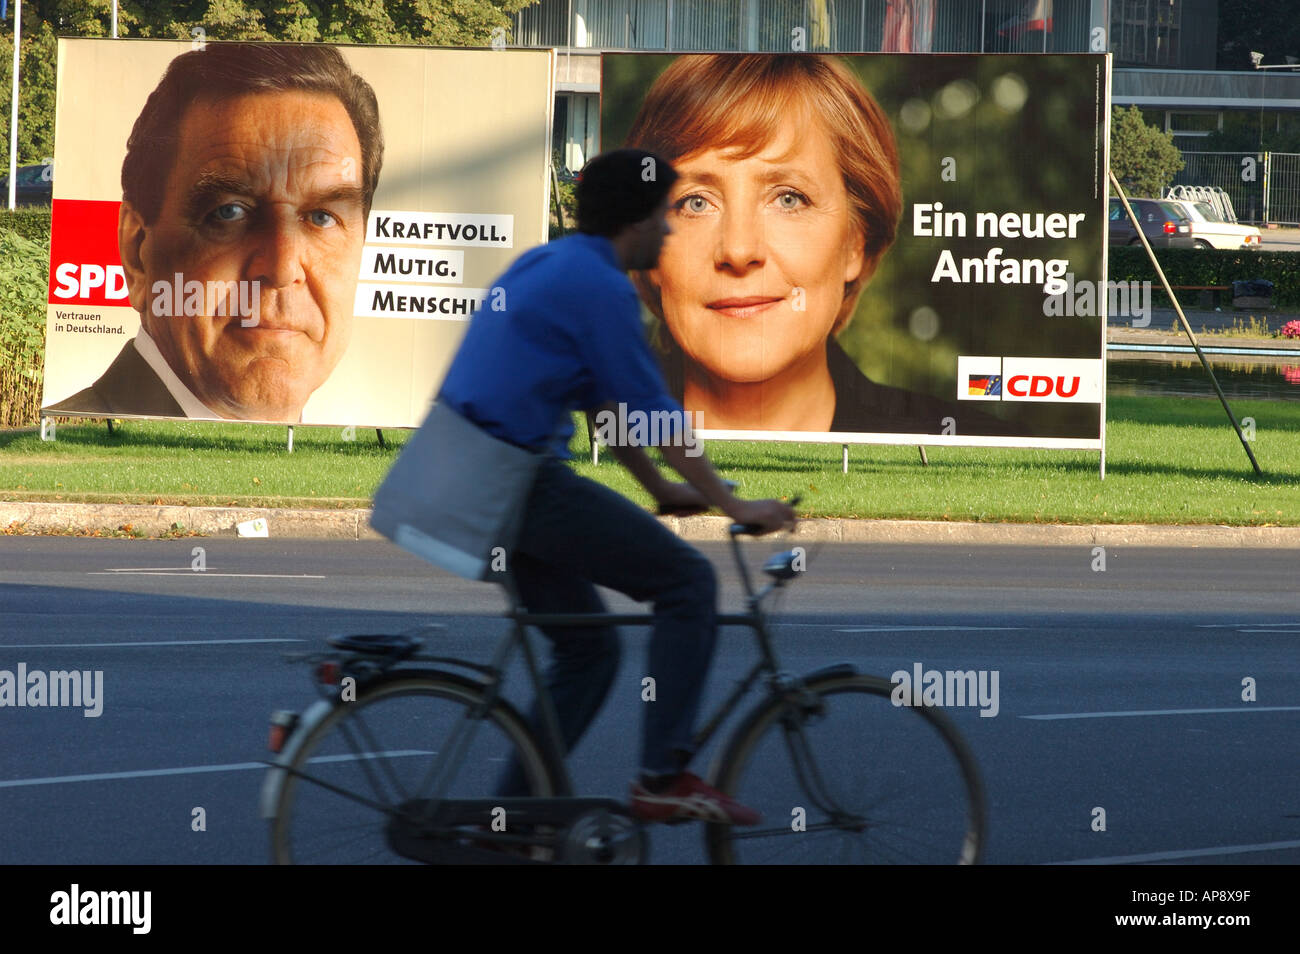 Cyclists passes election campaign posters showing Gerhard Schroeder and Angela Merkel, 2002 - Stock Image